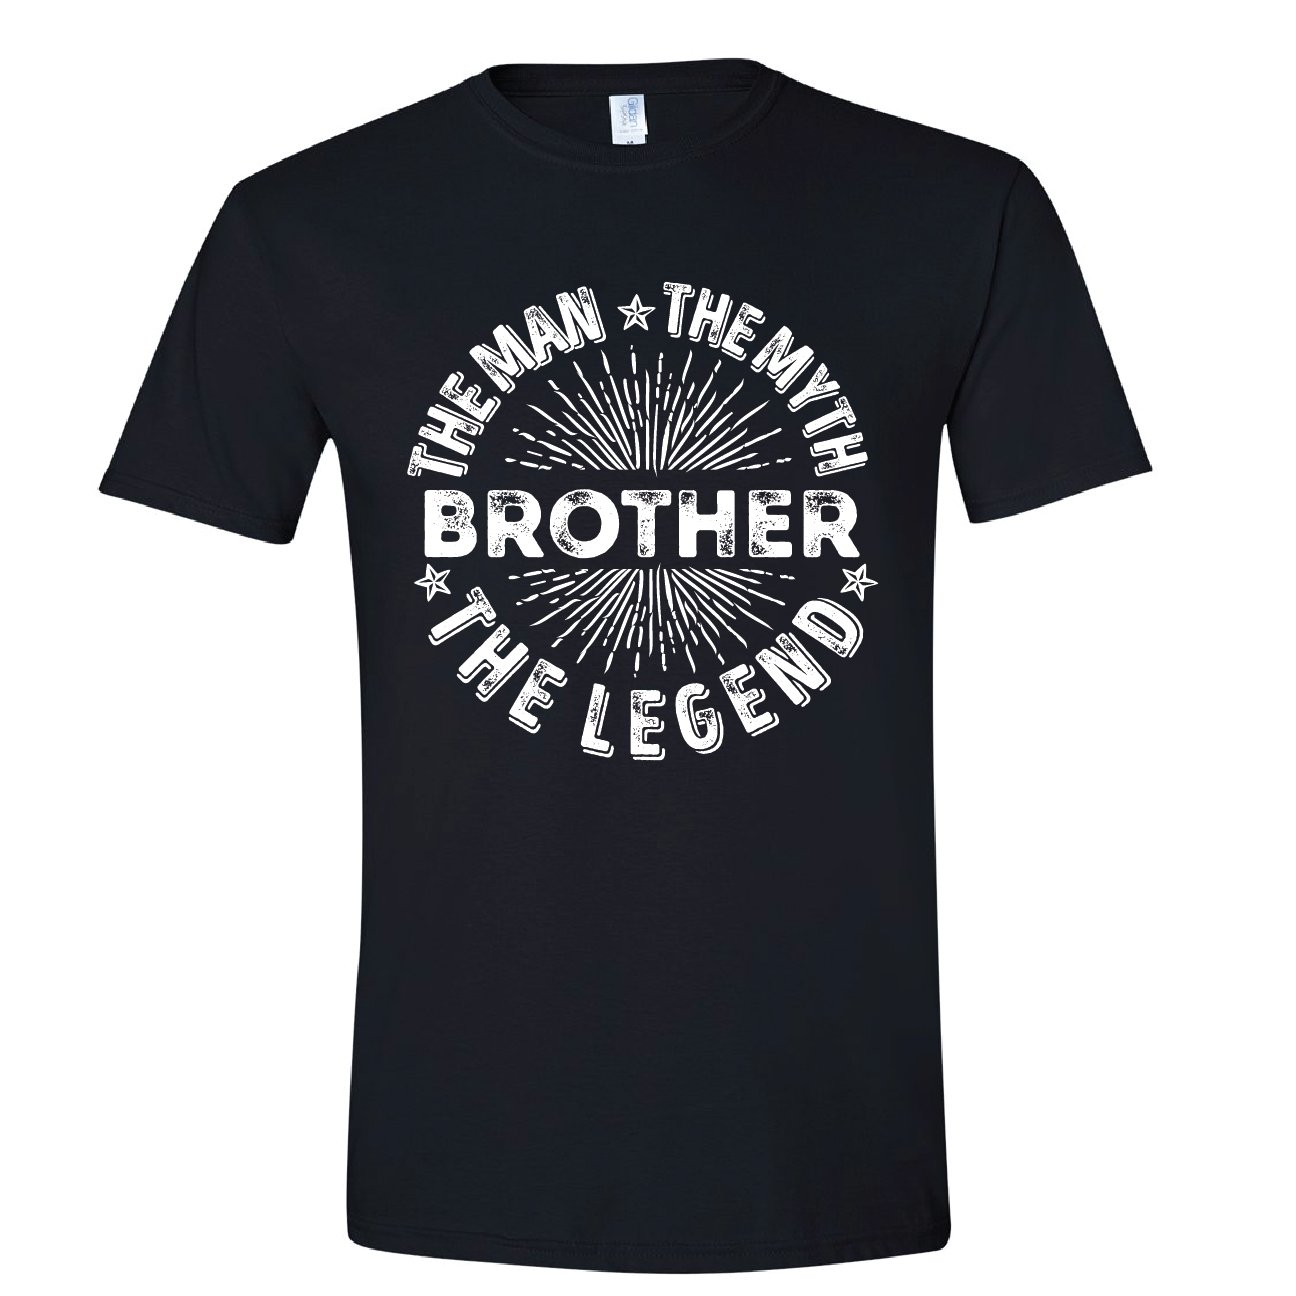 11d232fb5 The Man The Myth The Legend Shirt, Shirts for Dad, Tshirt for Grandpa |  Amazon.com